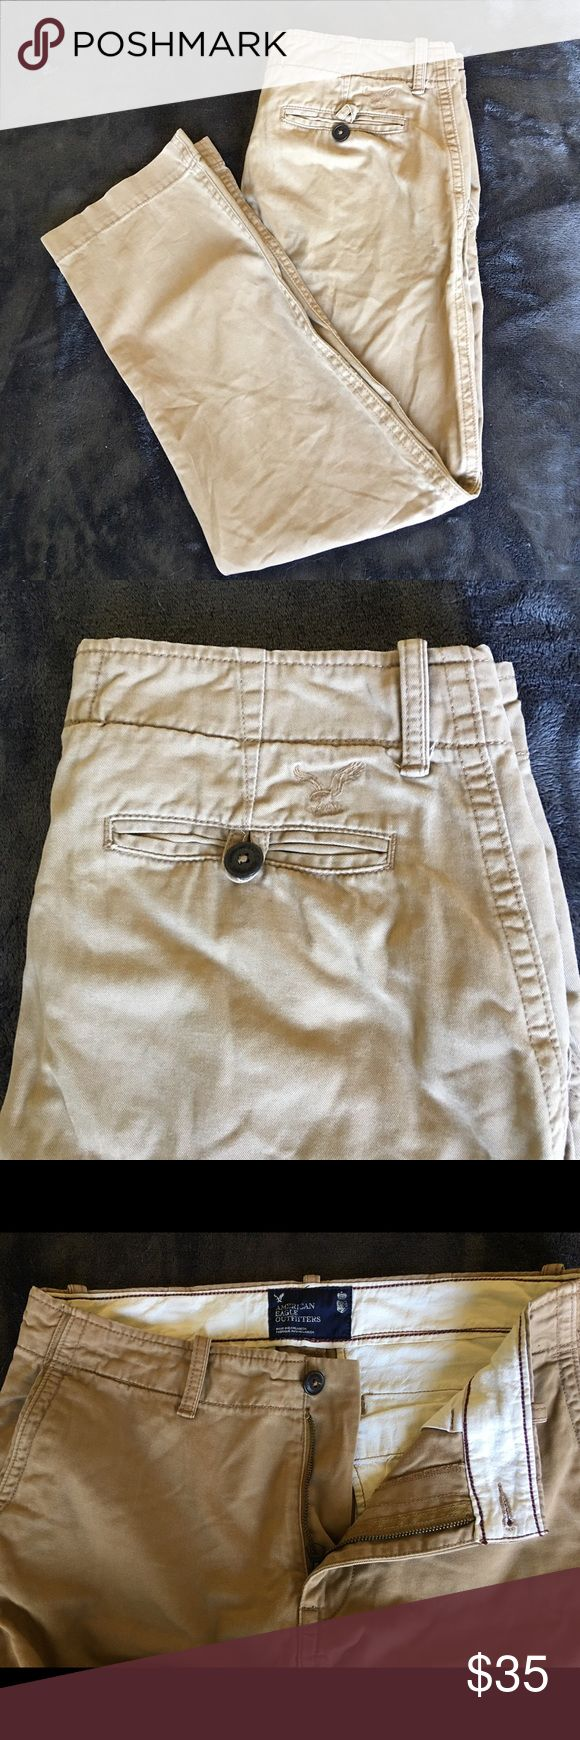 America Eagle 🦅 pants 33x32 America Eagle 🦅 33x32 men's pants.  Soft cotton and in excellent condition. American Eagle Outfitters Pants Chinos & Khakis